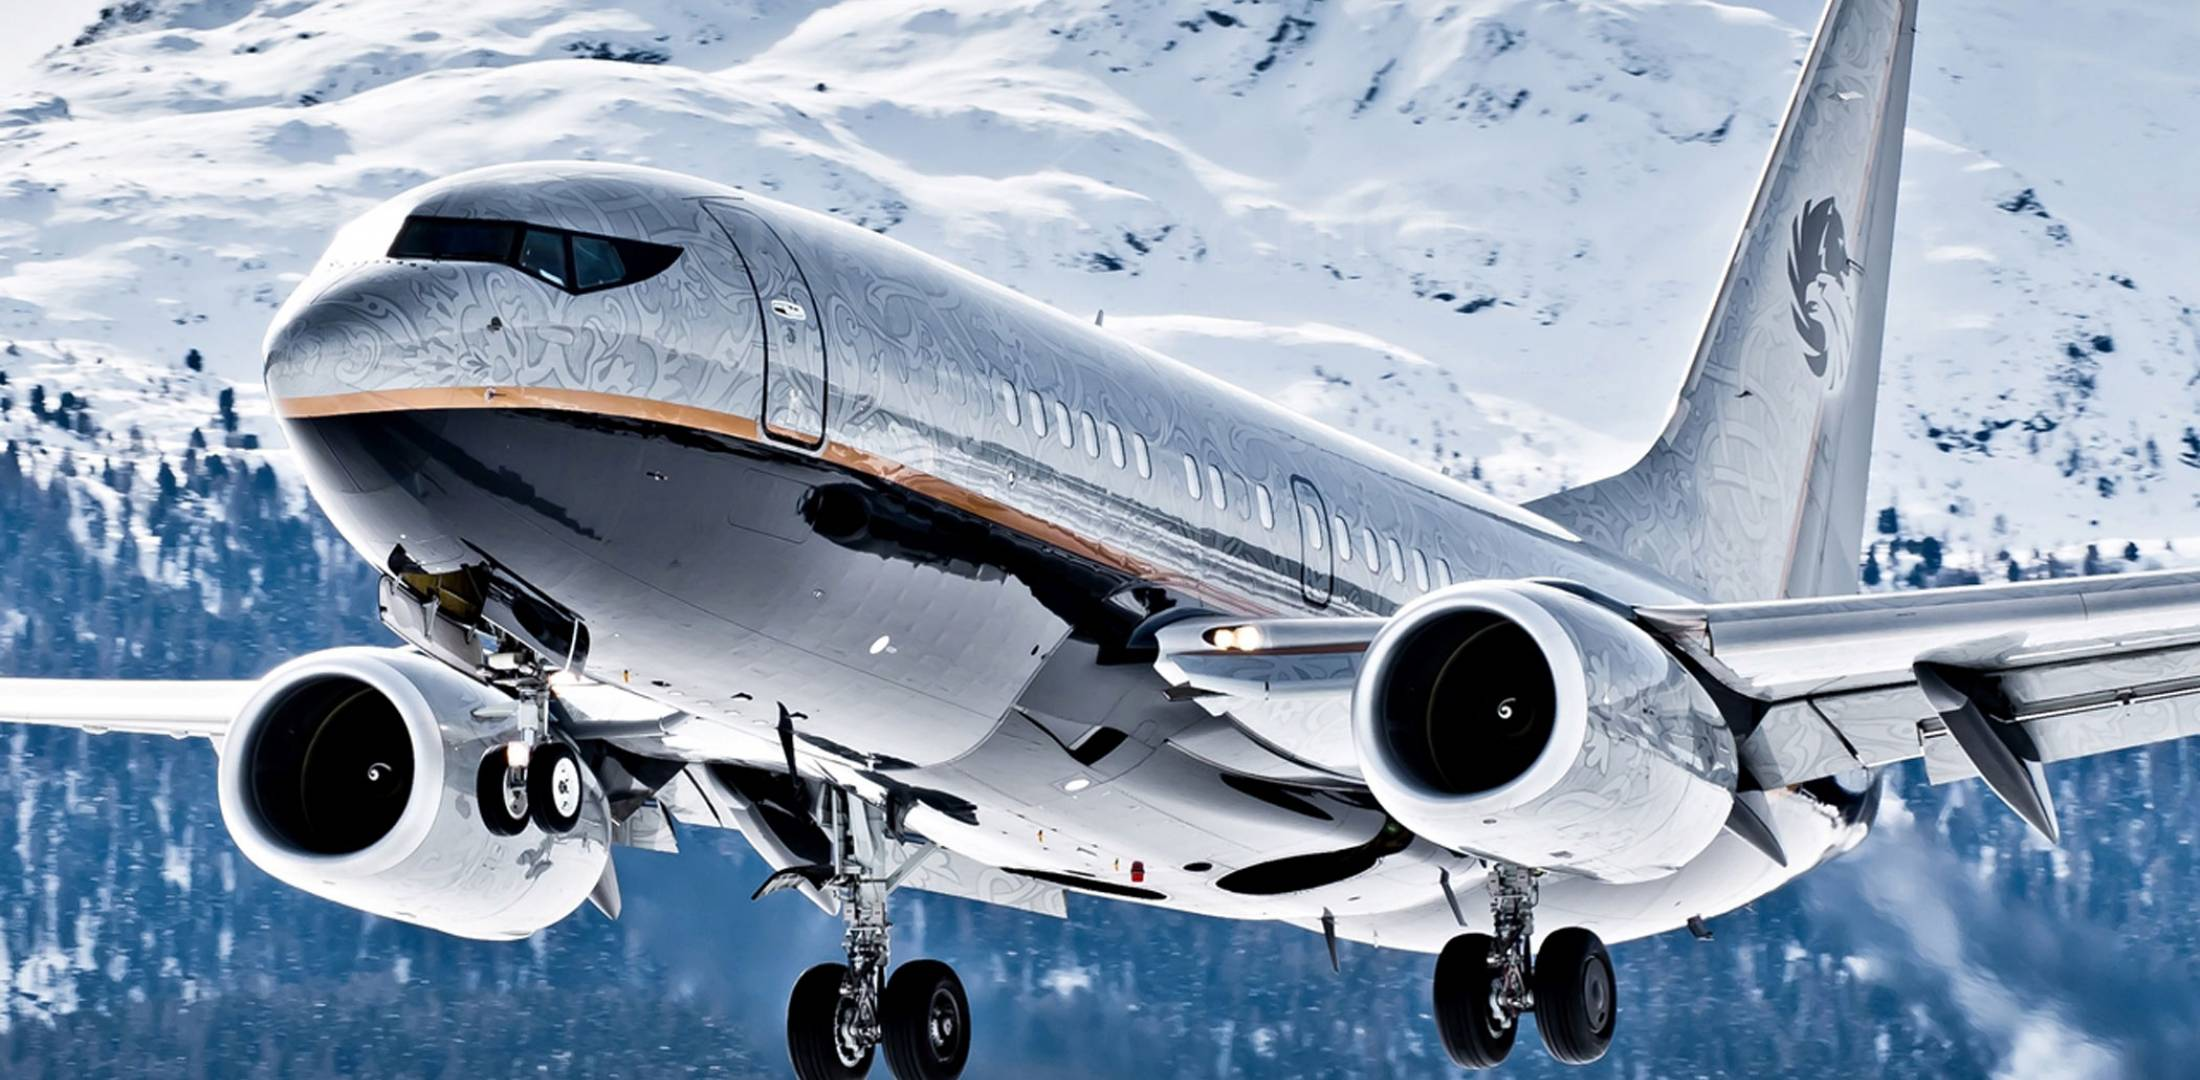 Vertis Aviation BBJ